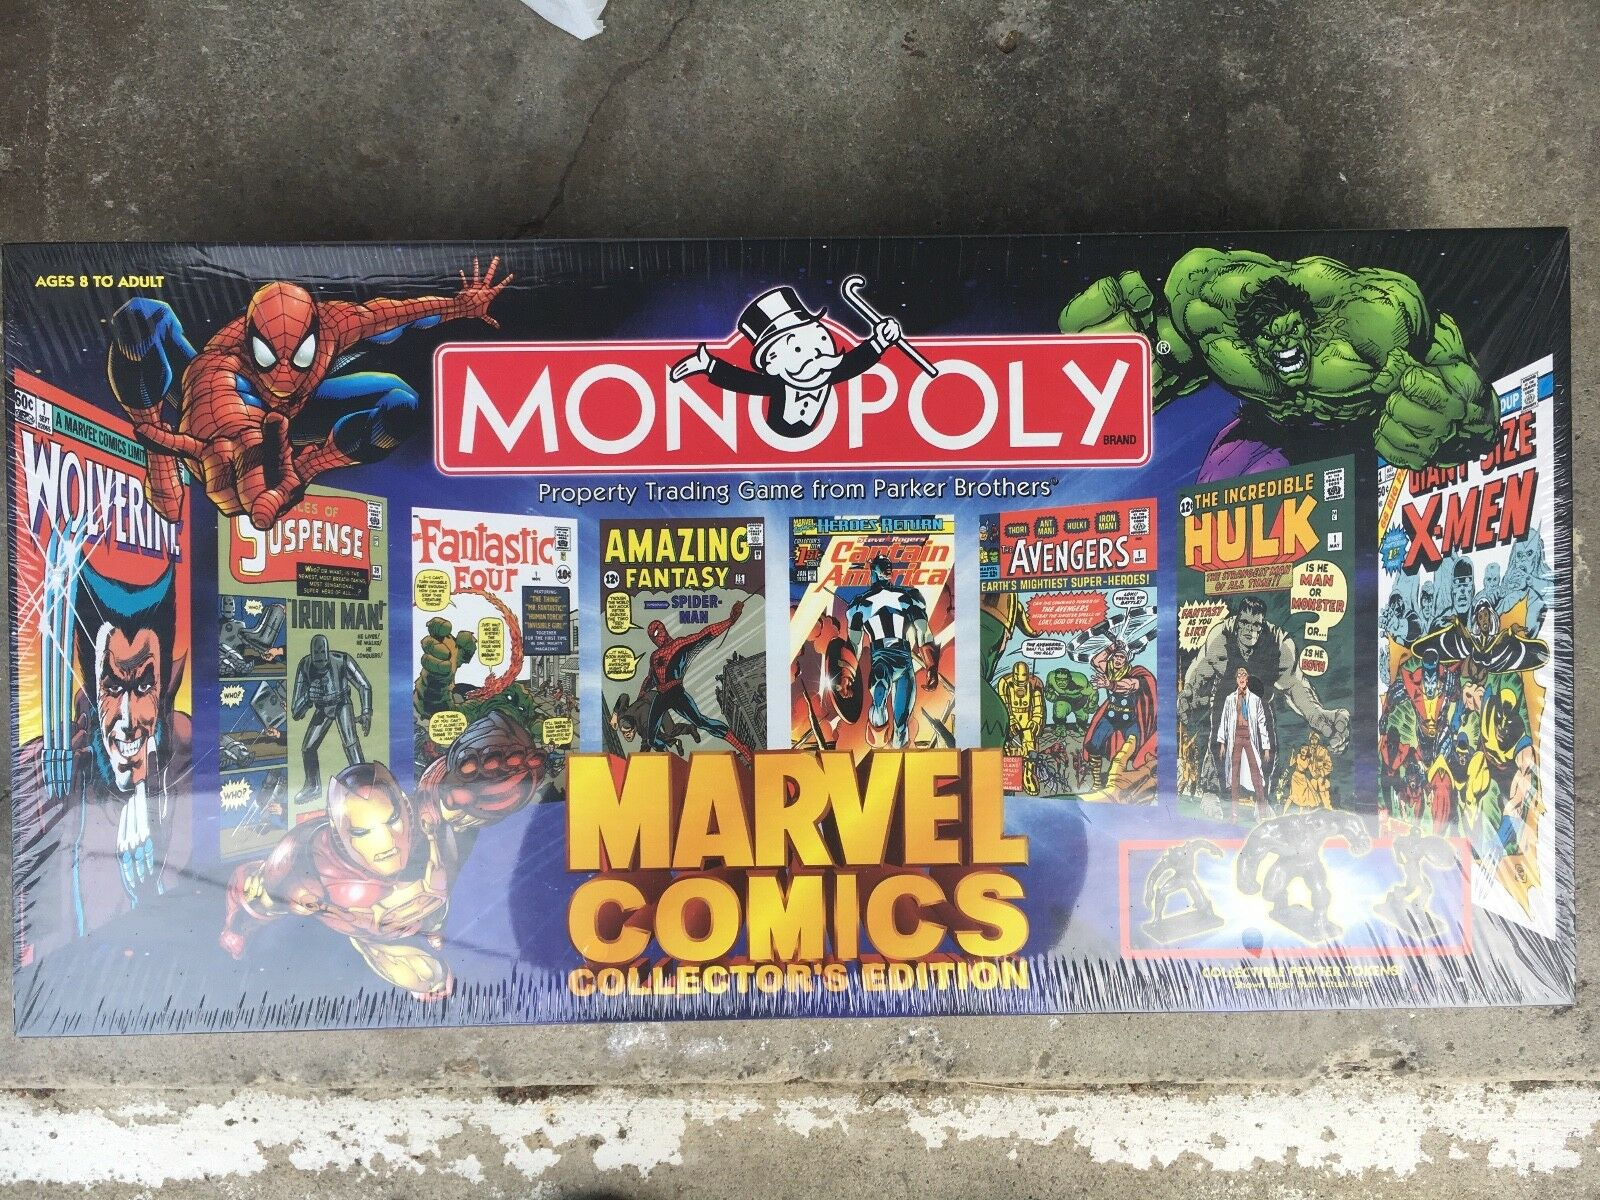 Brand new never opened marvel comics collectors edition monopoly